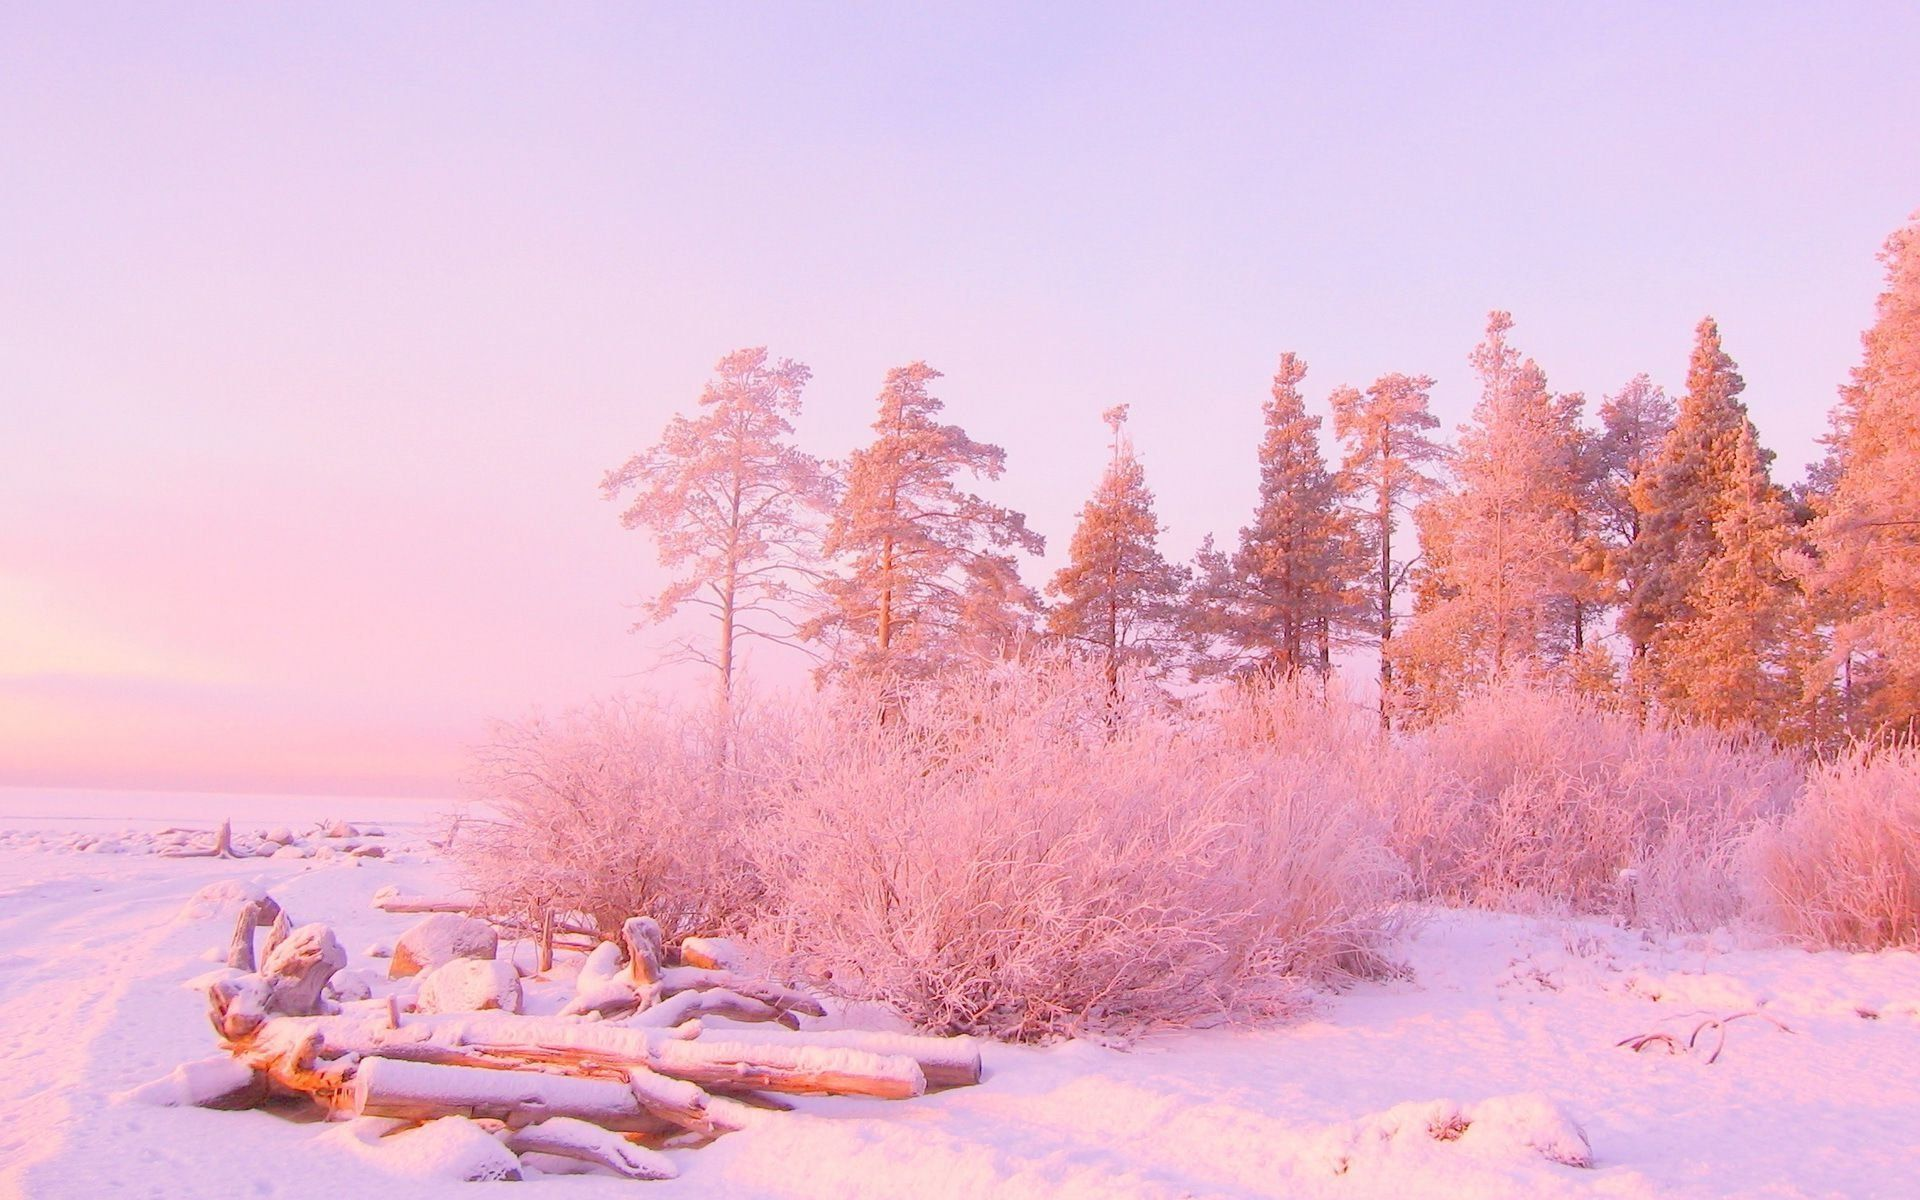 Aesthetic Pink Windows Wallpapers - Wallpaper Cave